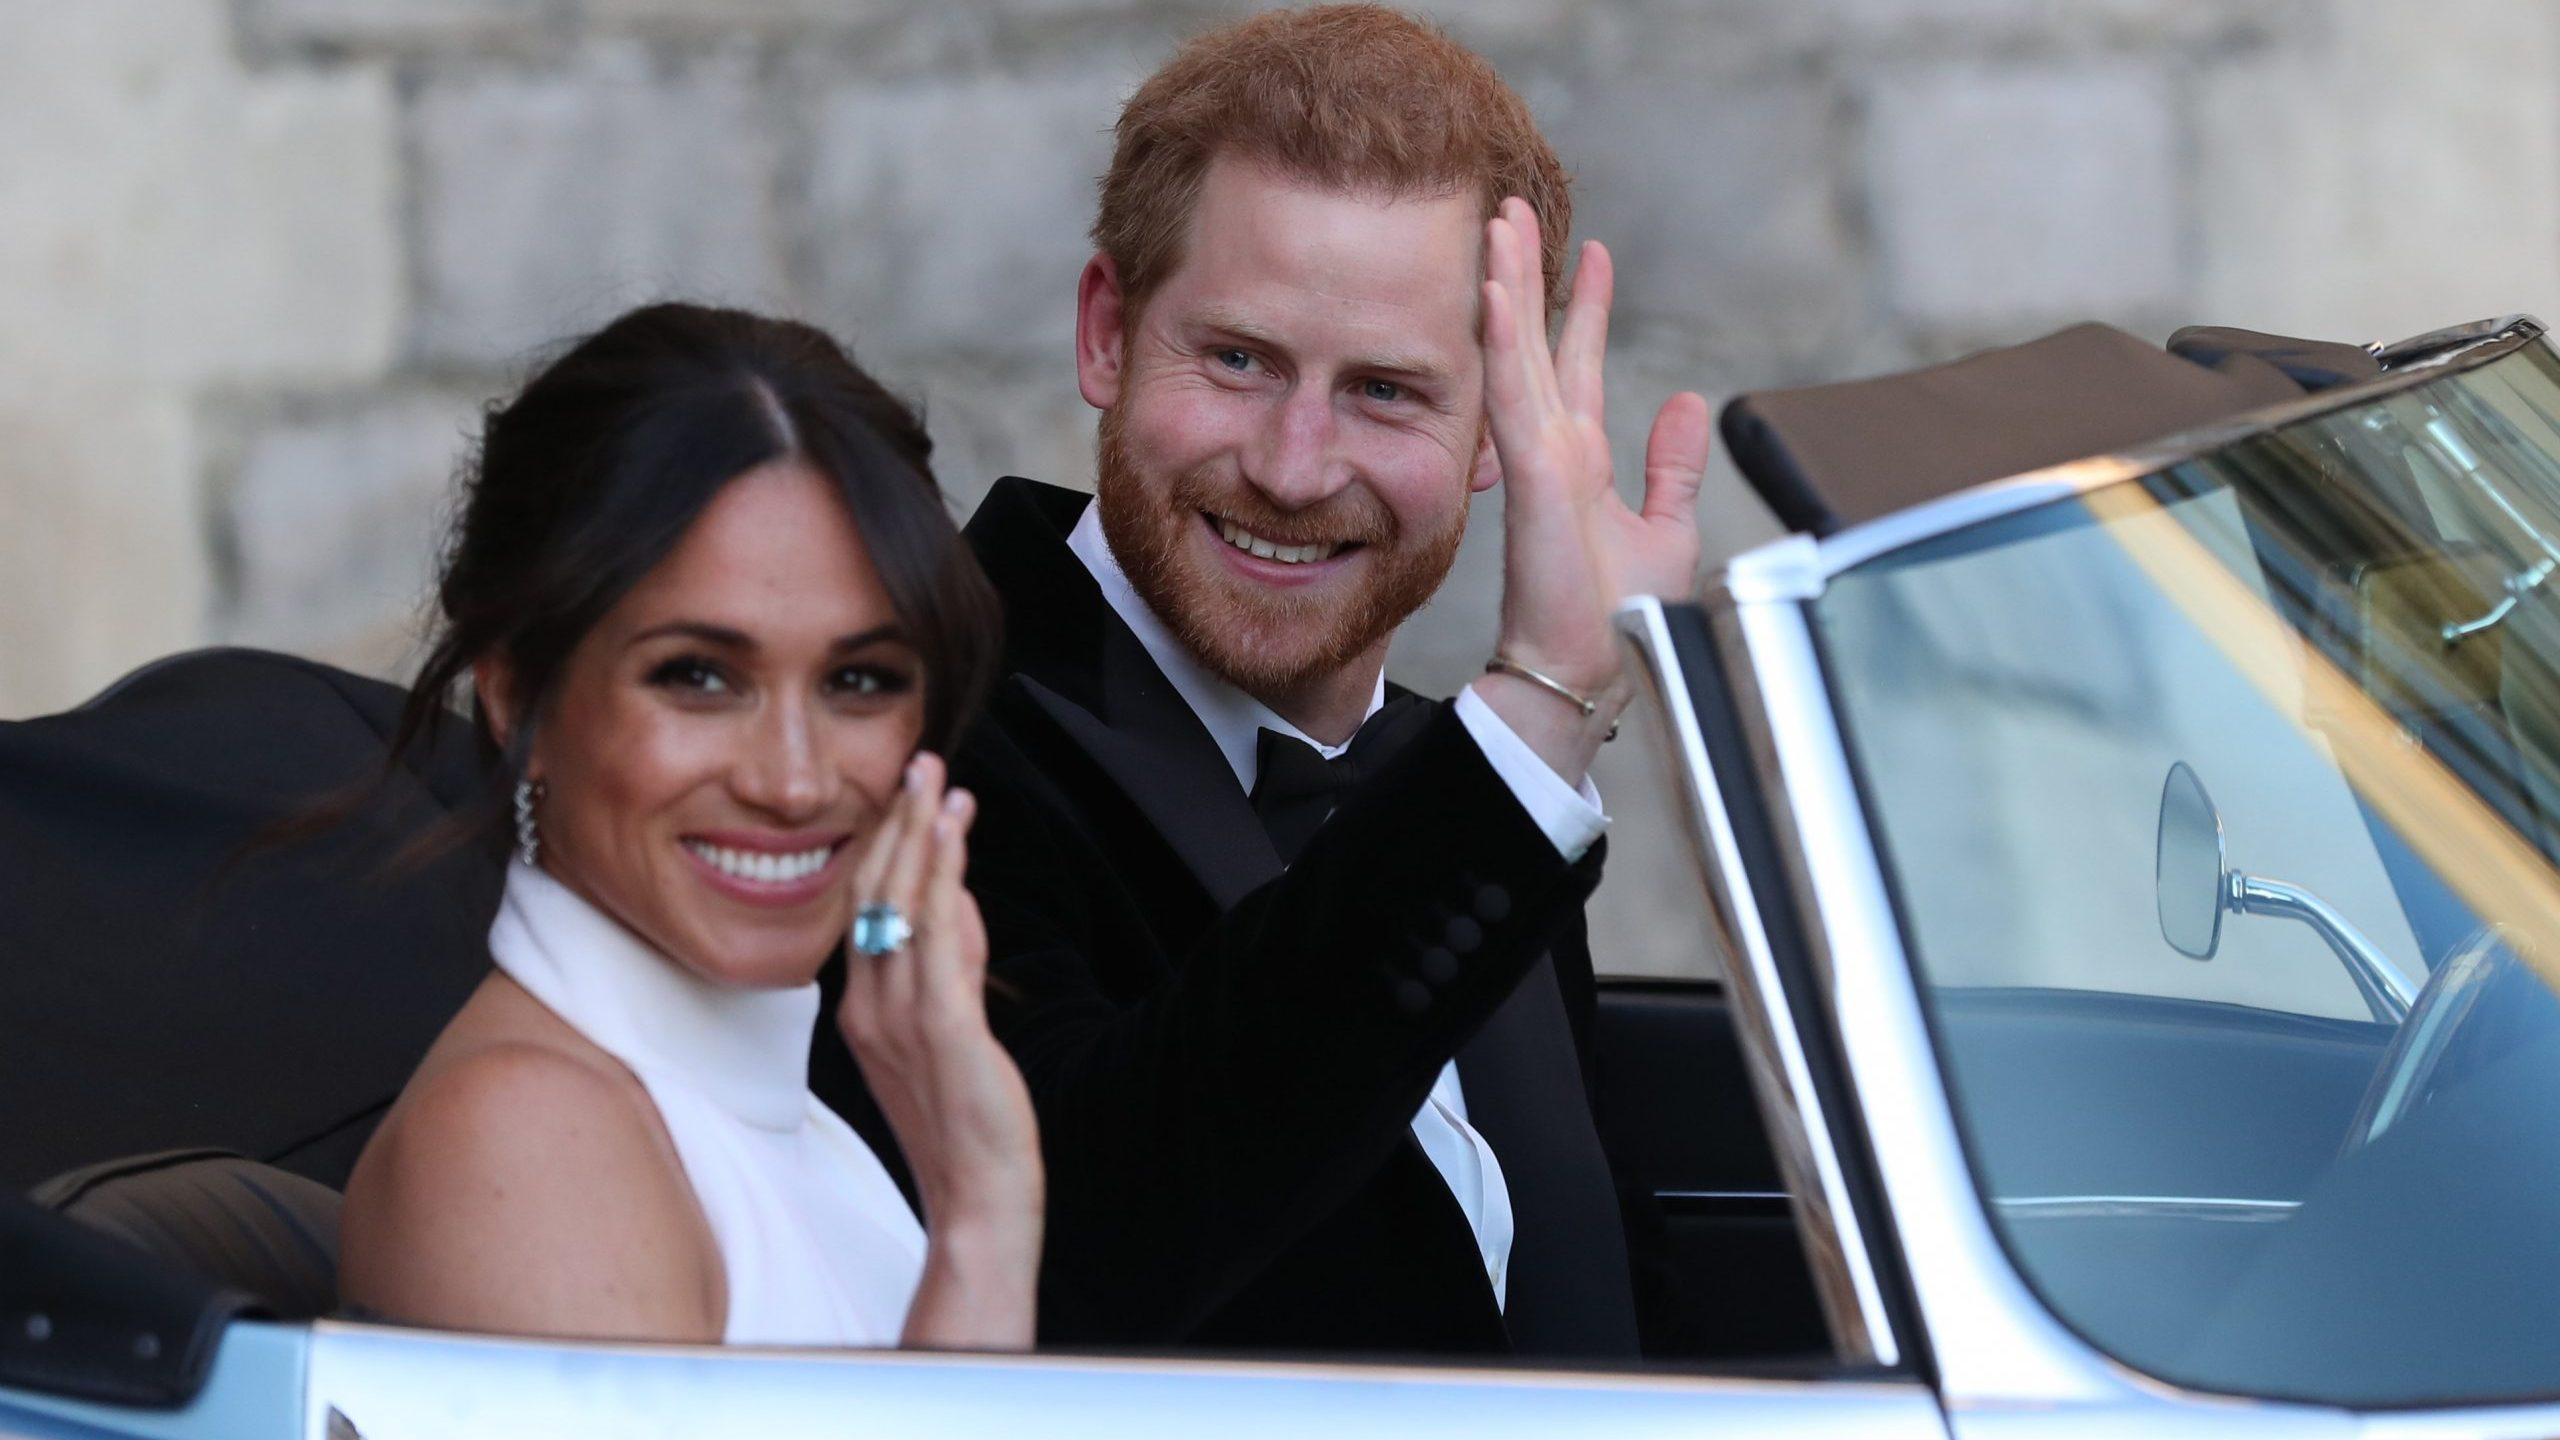 Duchess of Sussex and Prince Harry, Duke of Sussex wave as they leave Windsor Castle after their wedding to attend an evening reception at Frogmore House, hosted by the Prince of Wales on May 19, 2018 in Windsor, England. (Credit: Steve Parsons - WPA Pool/Getty Images)